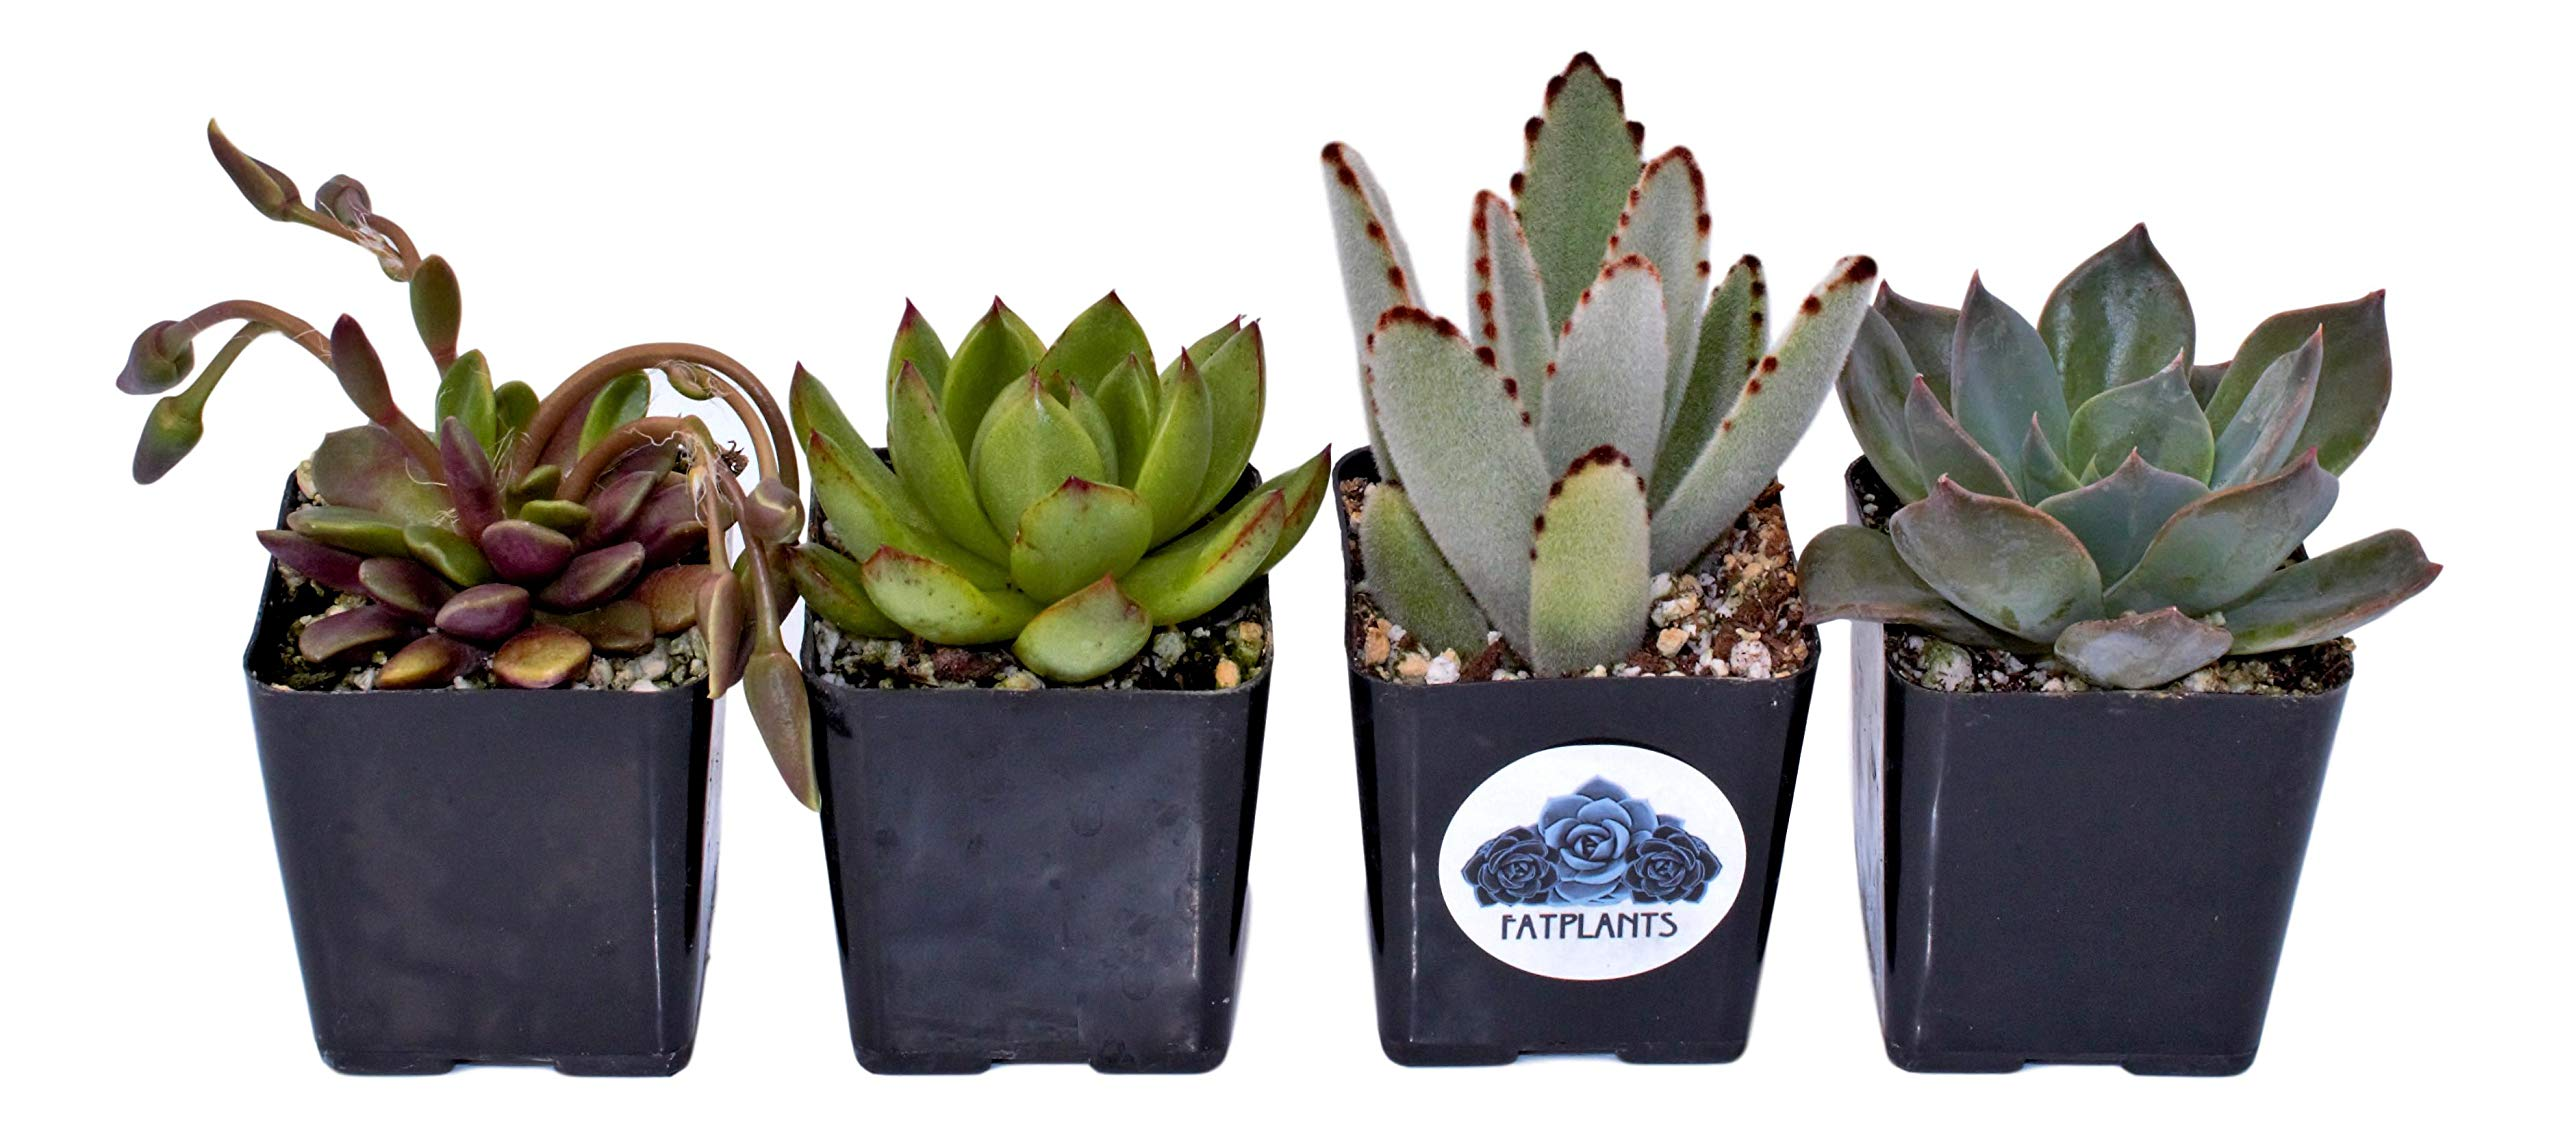 Fat Plants San Diego Premium Succulent Plant Variety Package. Live Indoor Succulents Rooted in Soil in a Plastic Growers Pot (4)